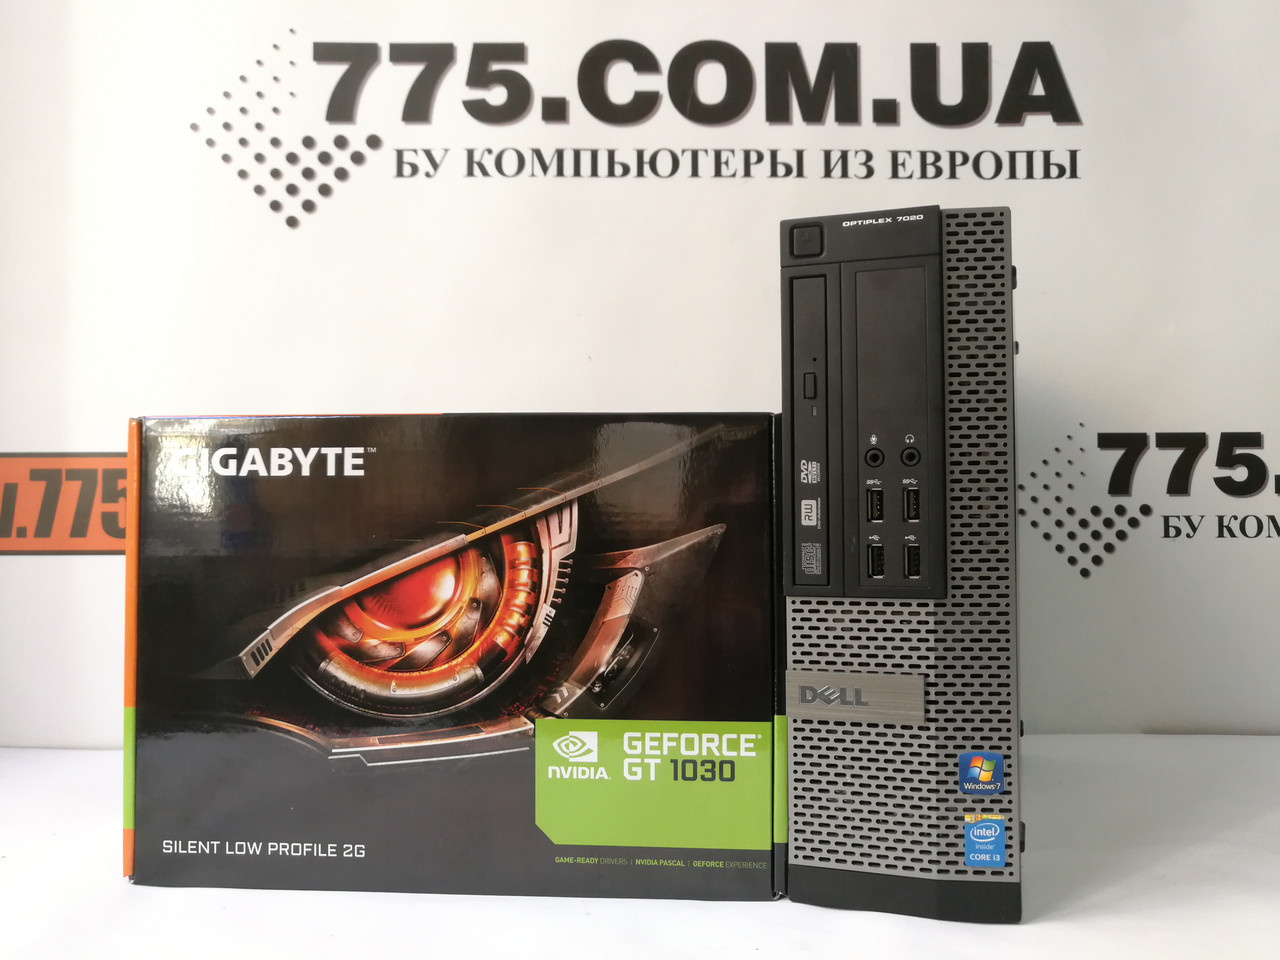 Компьютер Dell 7020, Intel Core i5-4560 3.4GHz, RAM 8ГБ, SSD 120ГБ, GeForce GT 1030 2ГБ